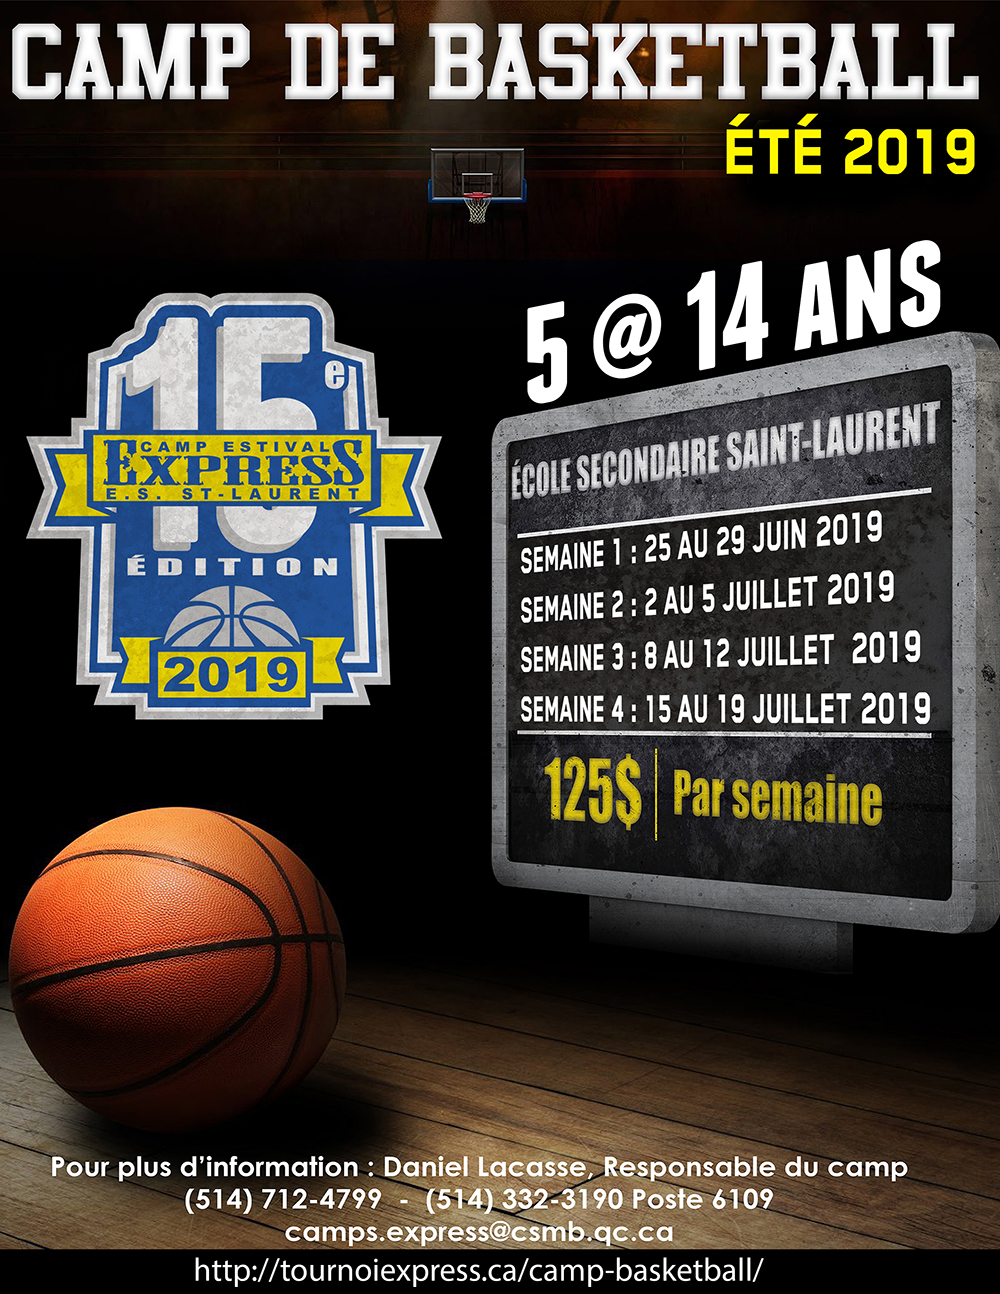 Affiche promo camp de basketball